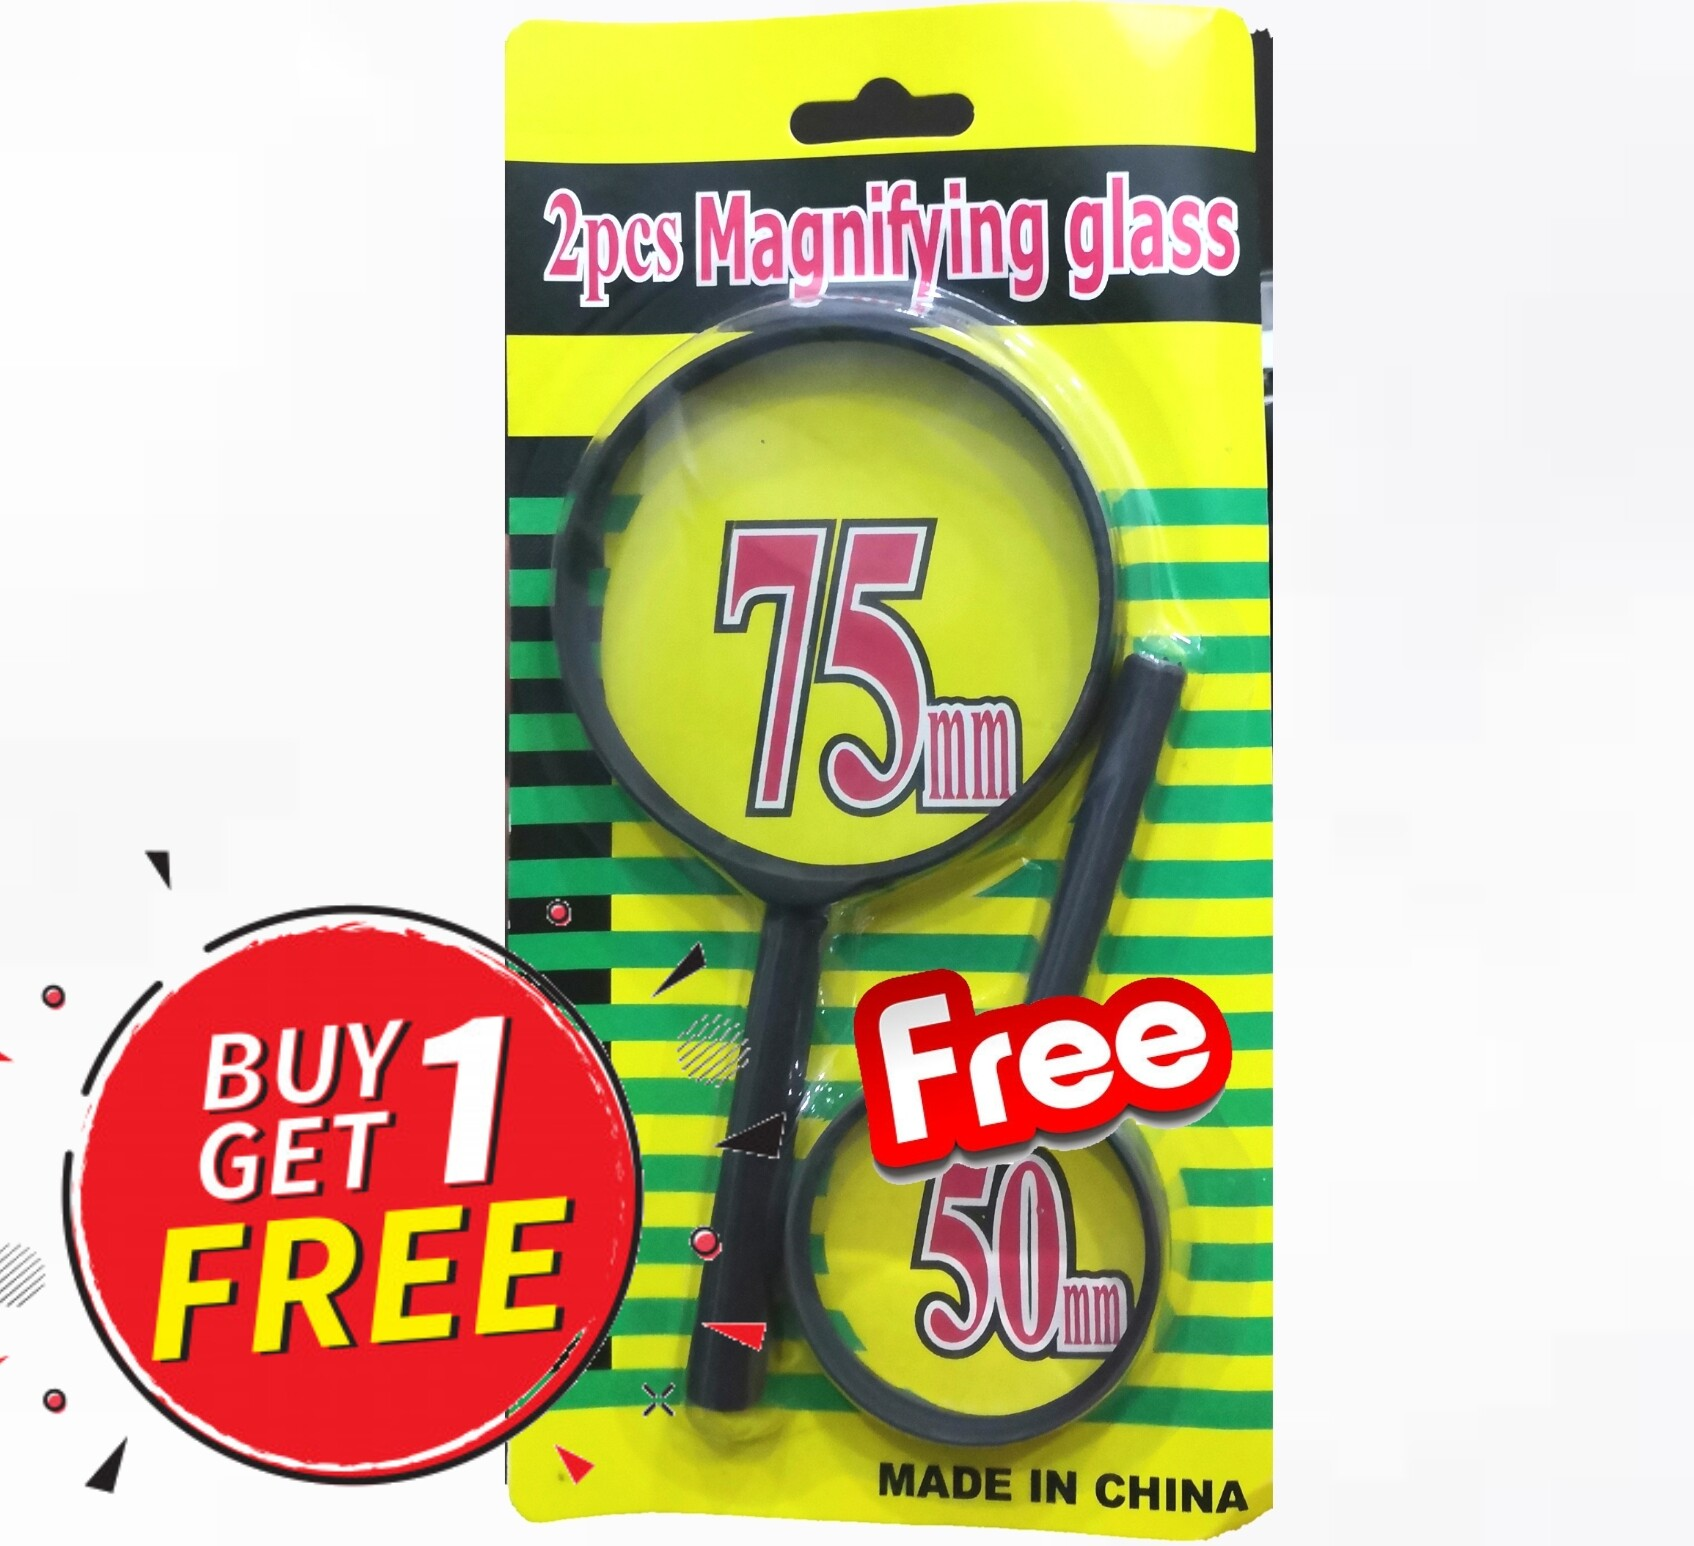 (Ready Stock)Handheld Portable Magnifier Clarity Reading Magnifying Glass For Book Newspaper, Inspection 75mm Buy 1 Free 1